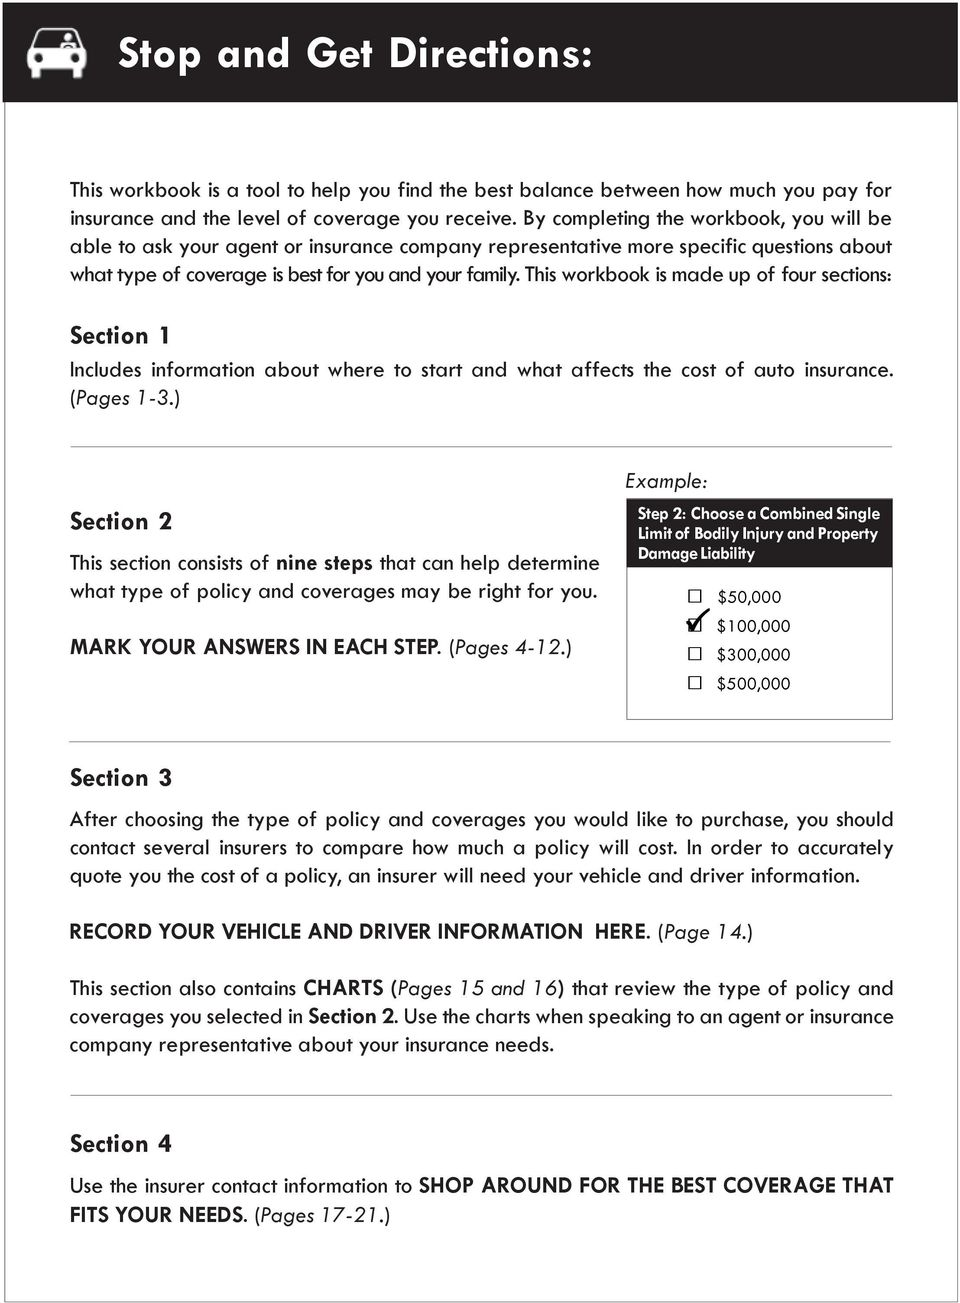 This workbook is made up of four sections: Section 1 Includes information about where to start and what affects the cost of auto insurance. (Pages 1-3.